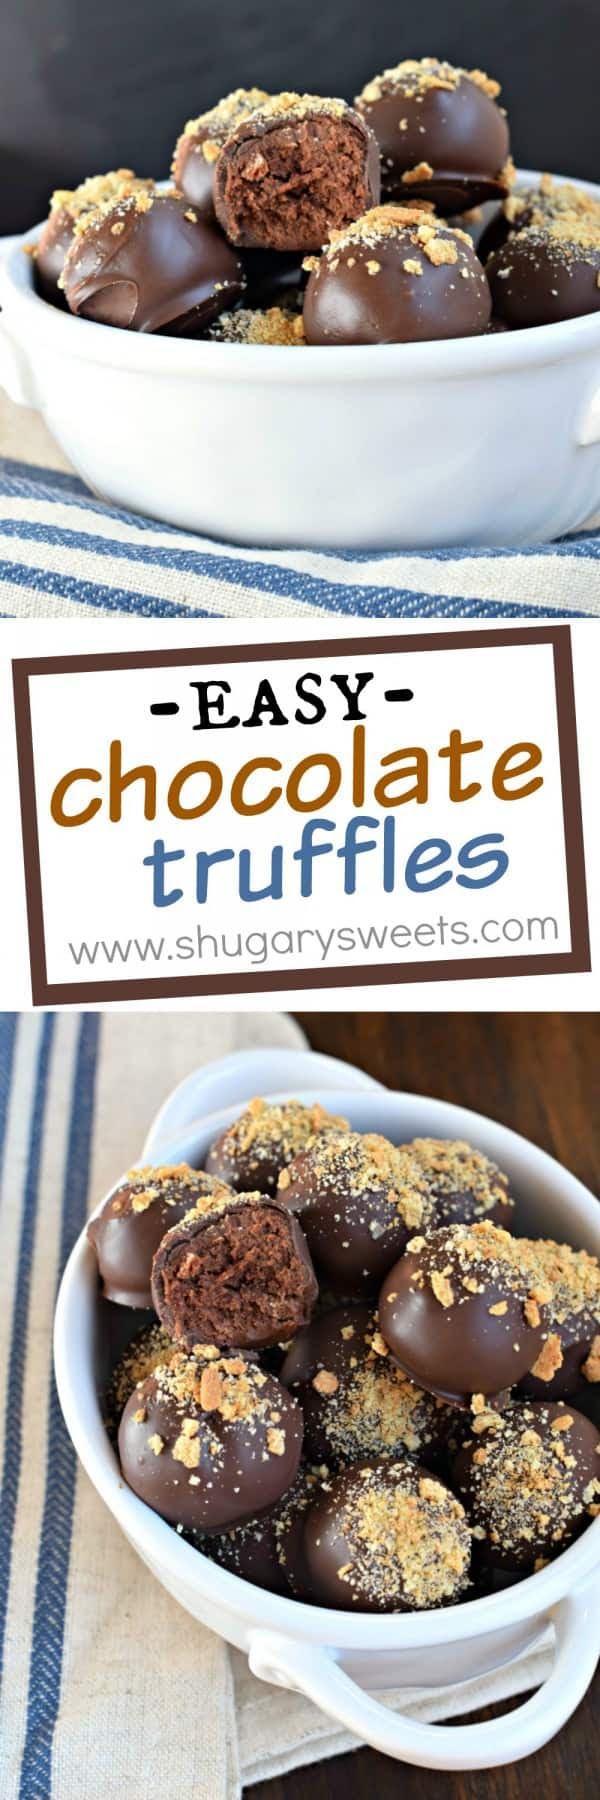 Easy Chocolate Truffles - Shugary Sweets